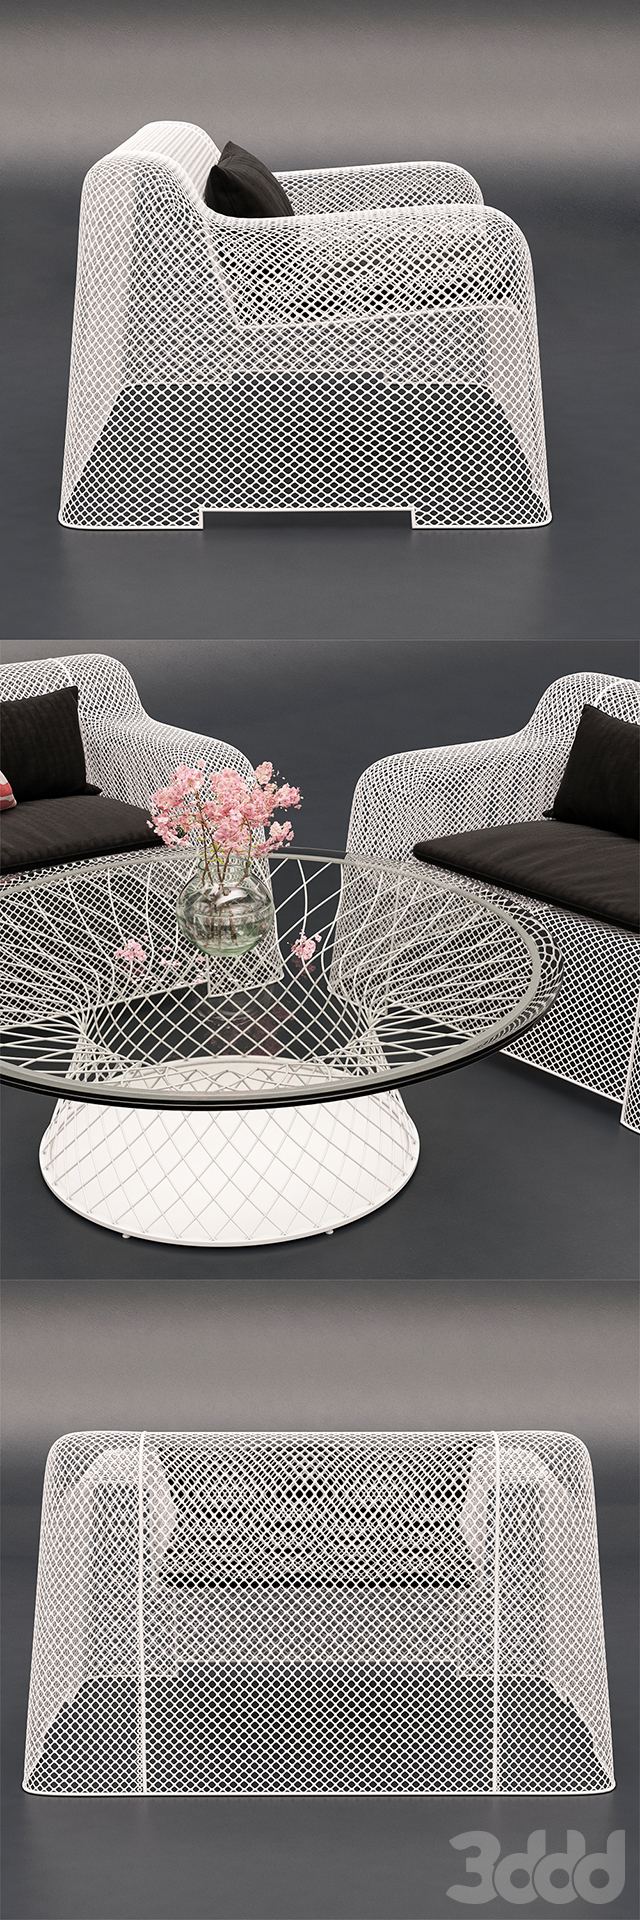 Coalesse Ivy Chair & Emu Table